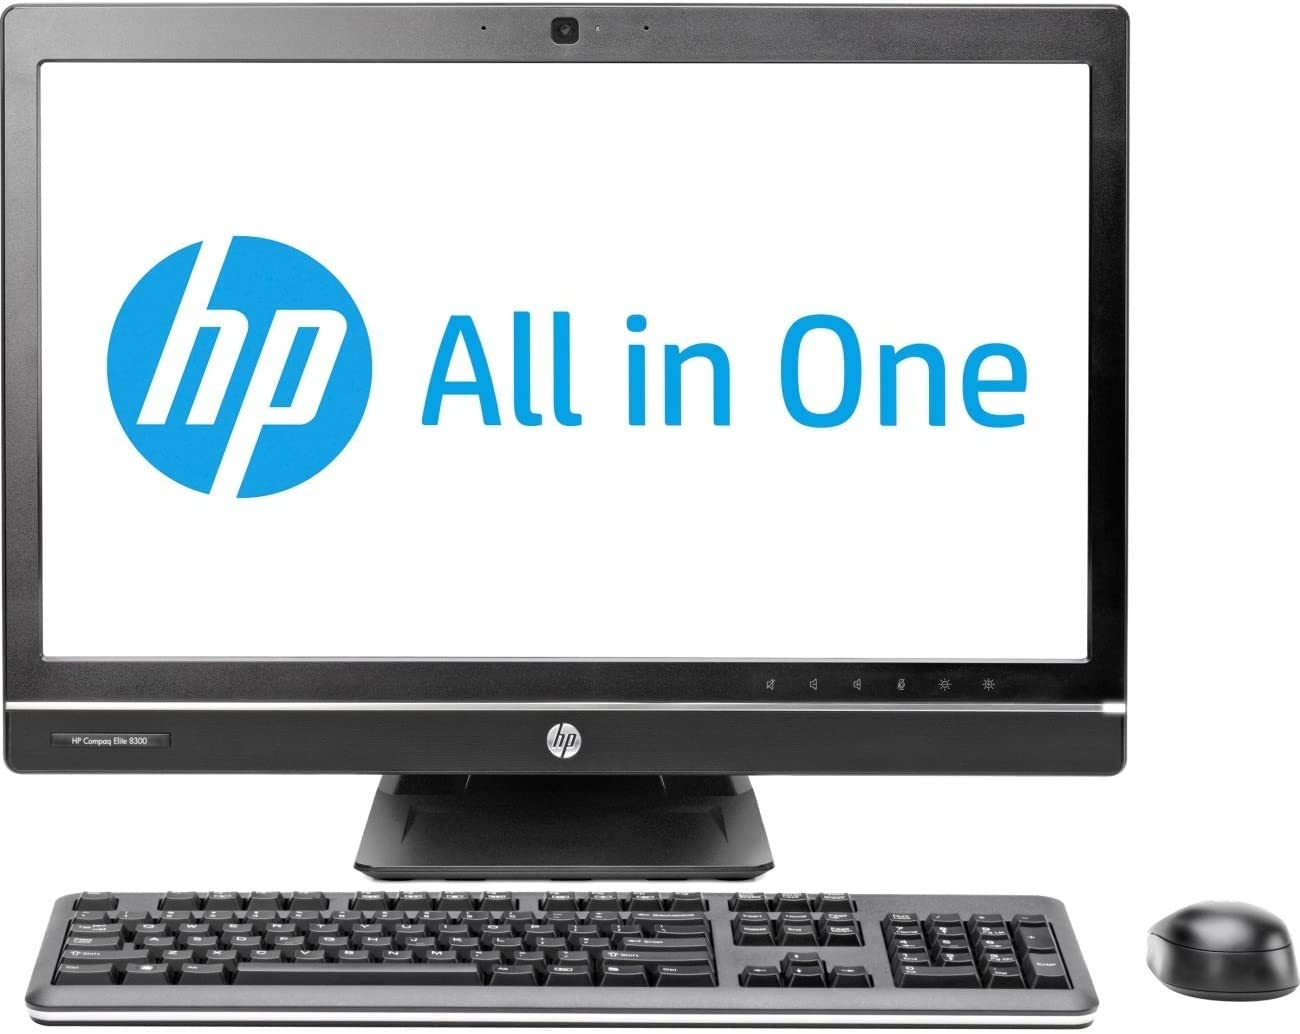 HP Compaq Elite 8300 All-in-One PC AIO Desktop Computer, 23 Inch Full-HD WLED Non-Touch LCD Display, Core i5-3470 3.20GHz, 8GB RAM, 120GB SSD, DVD, WiFi, Bluetooth (Renewed)